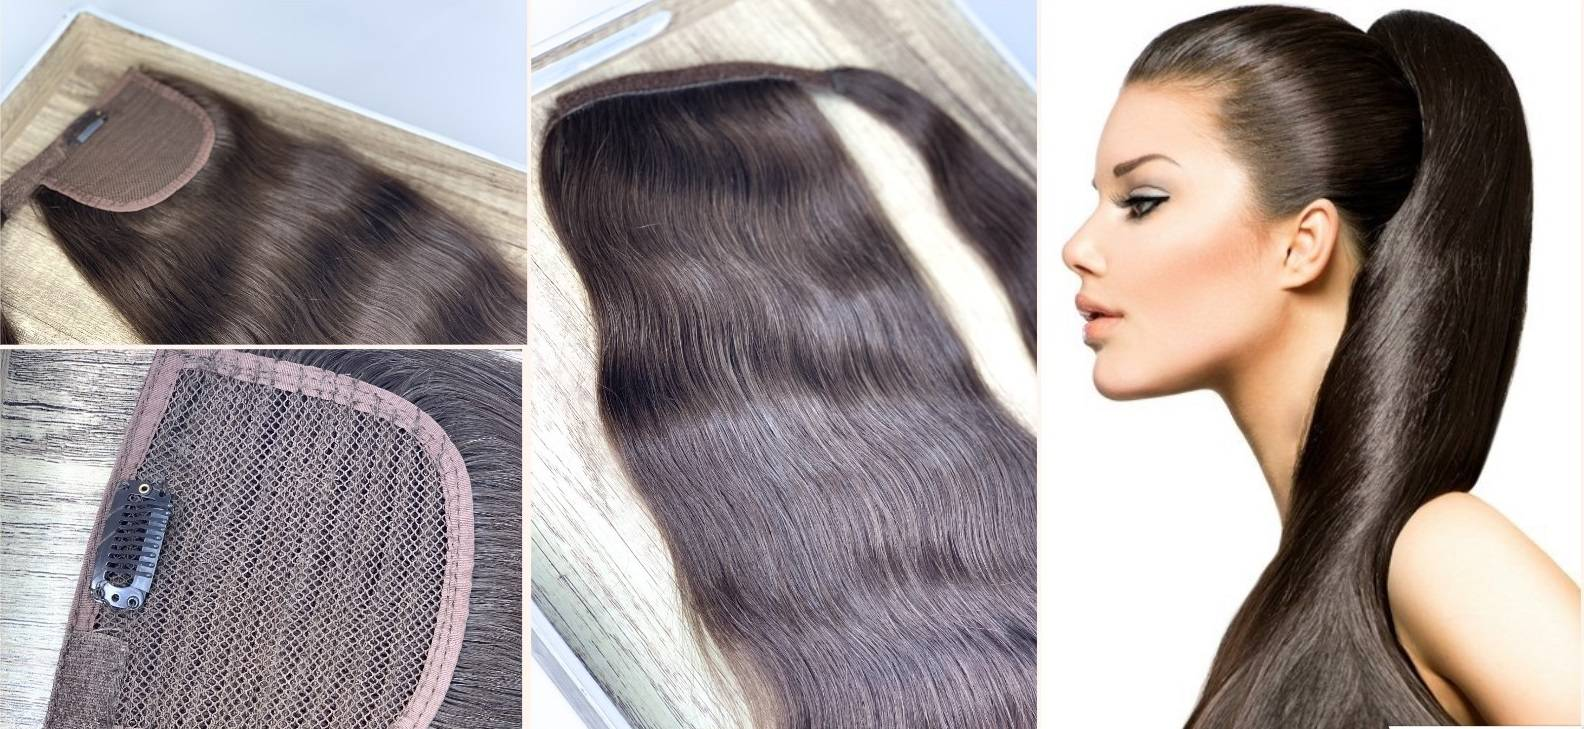 GVA ponytail hair extensions